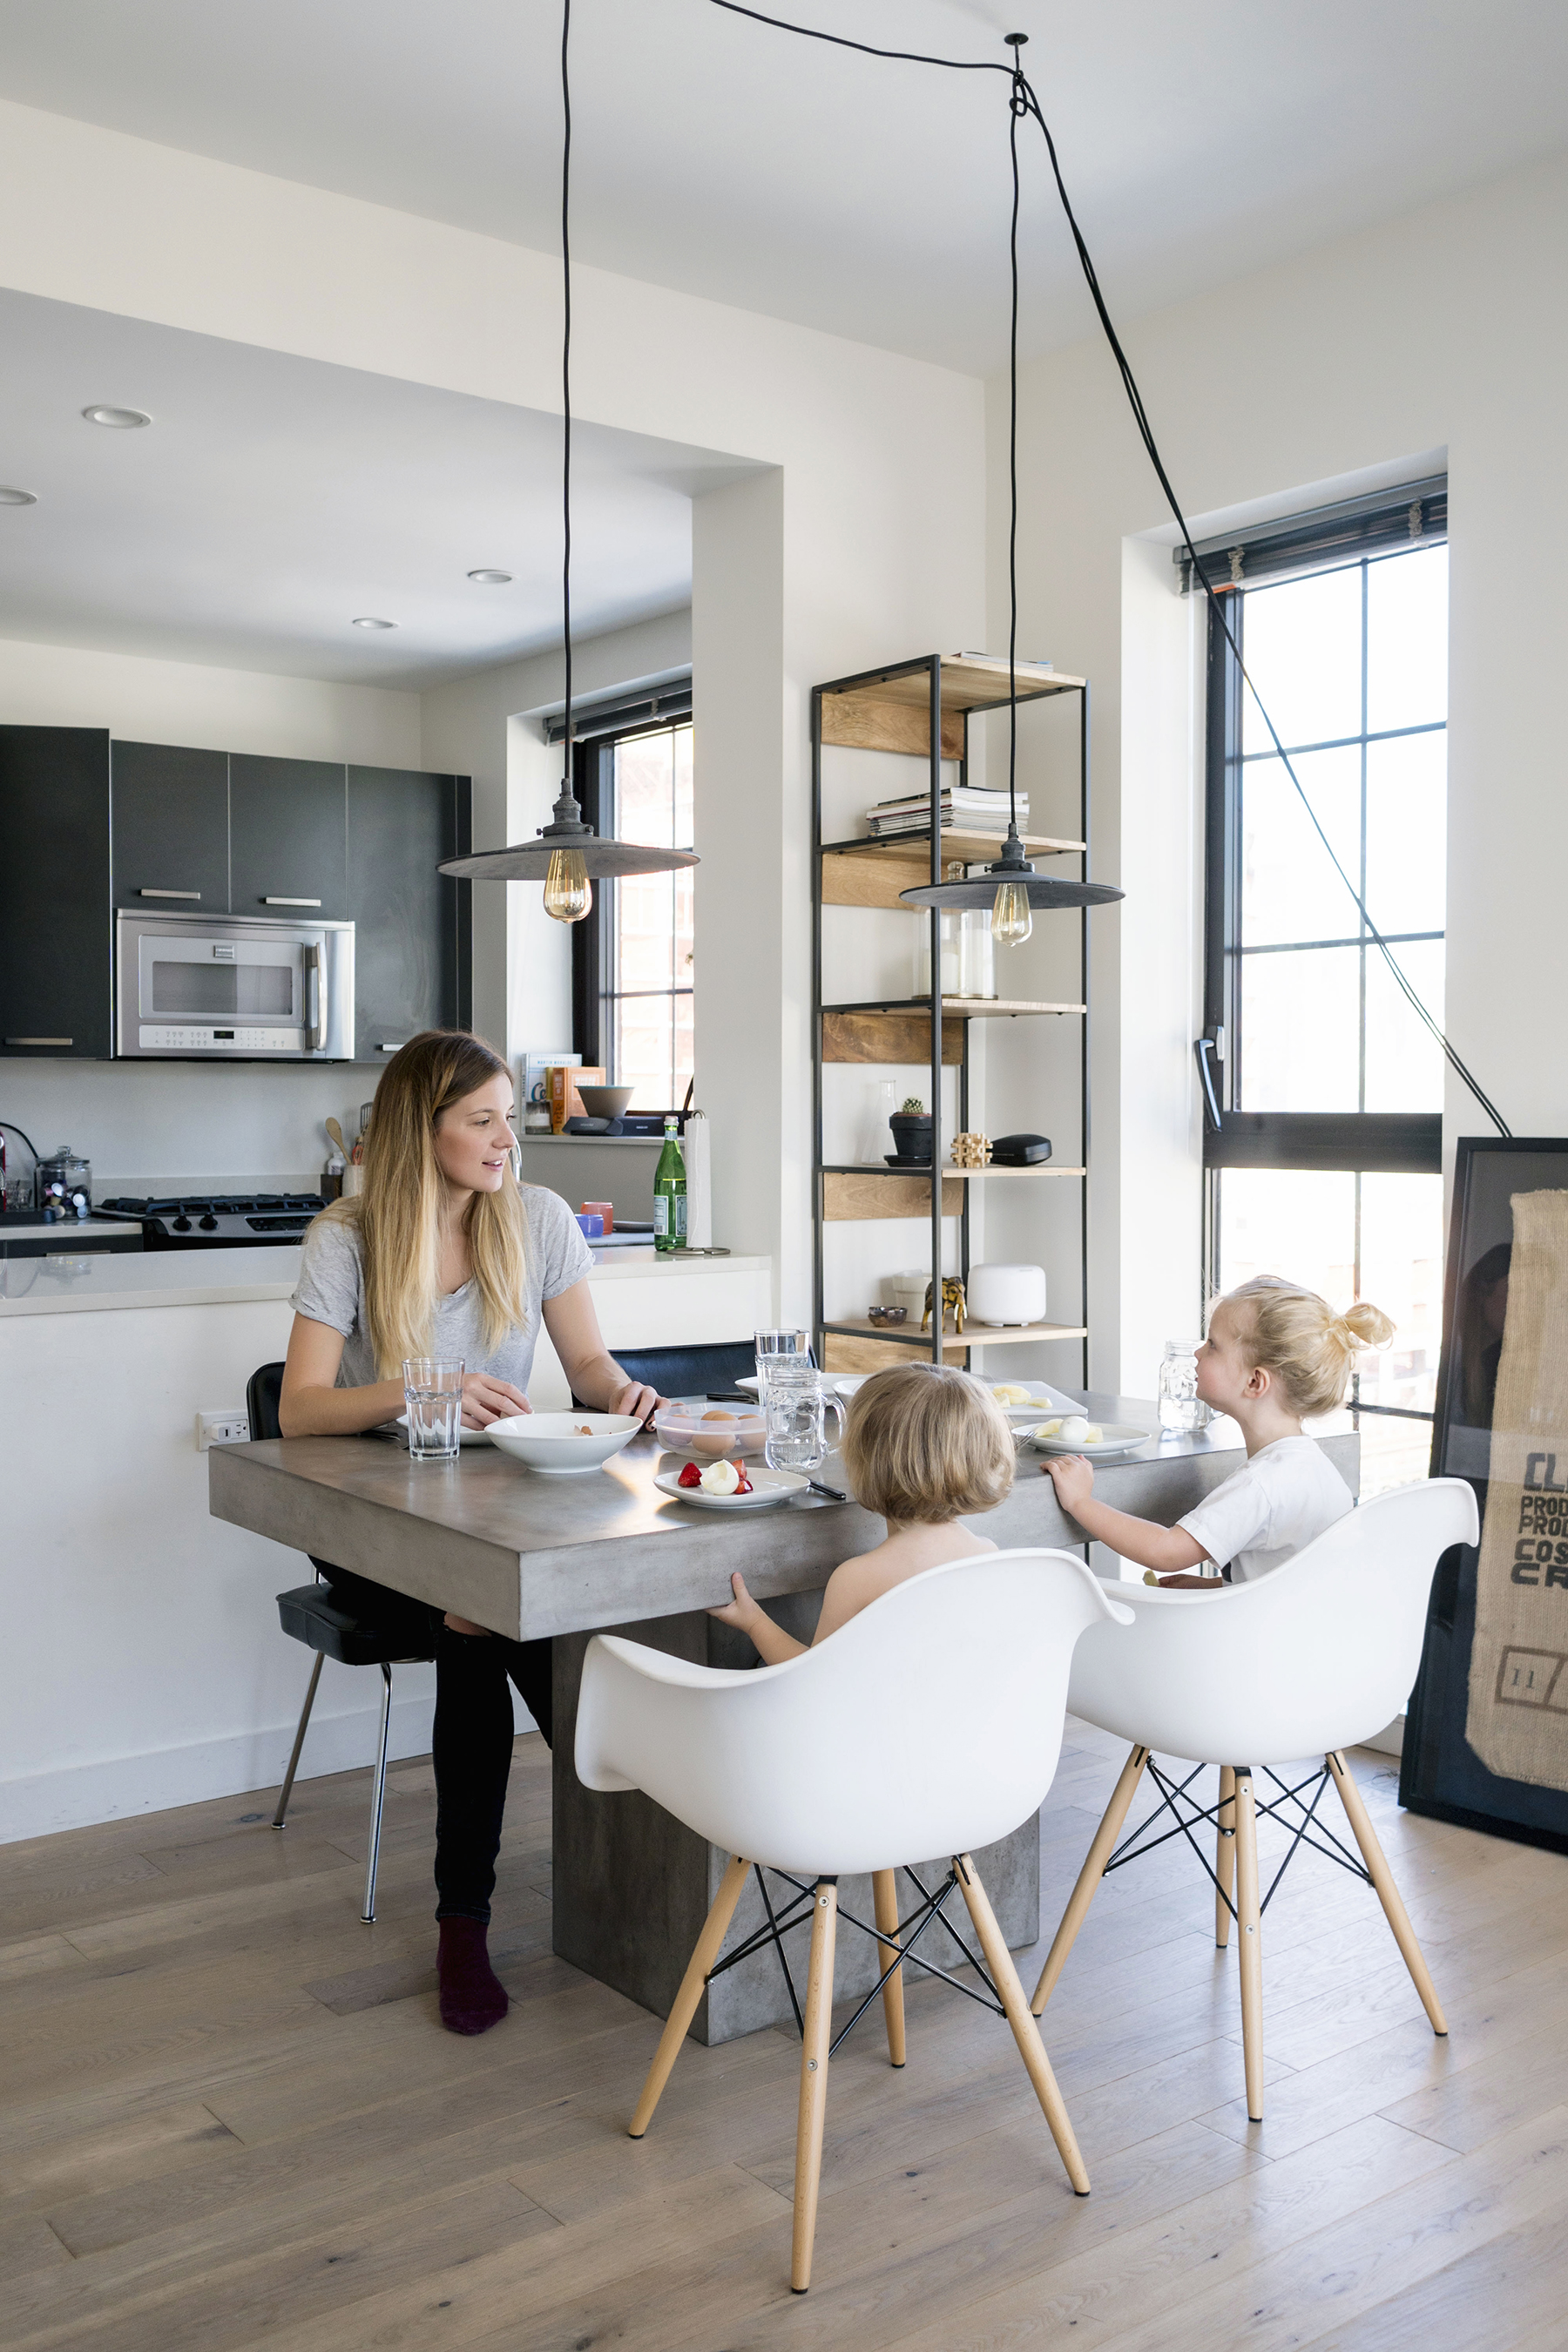 ikea stool chairs best executive office chair a scandinavian, industrial interior in nyc | happy grey lucky